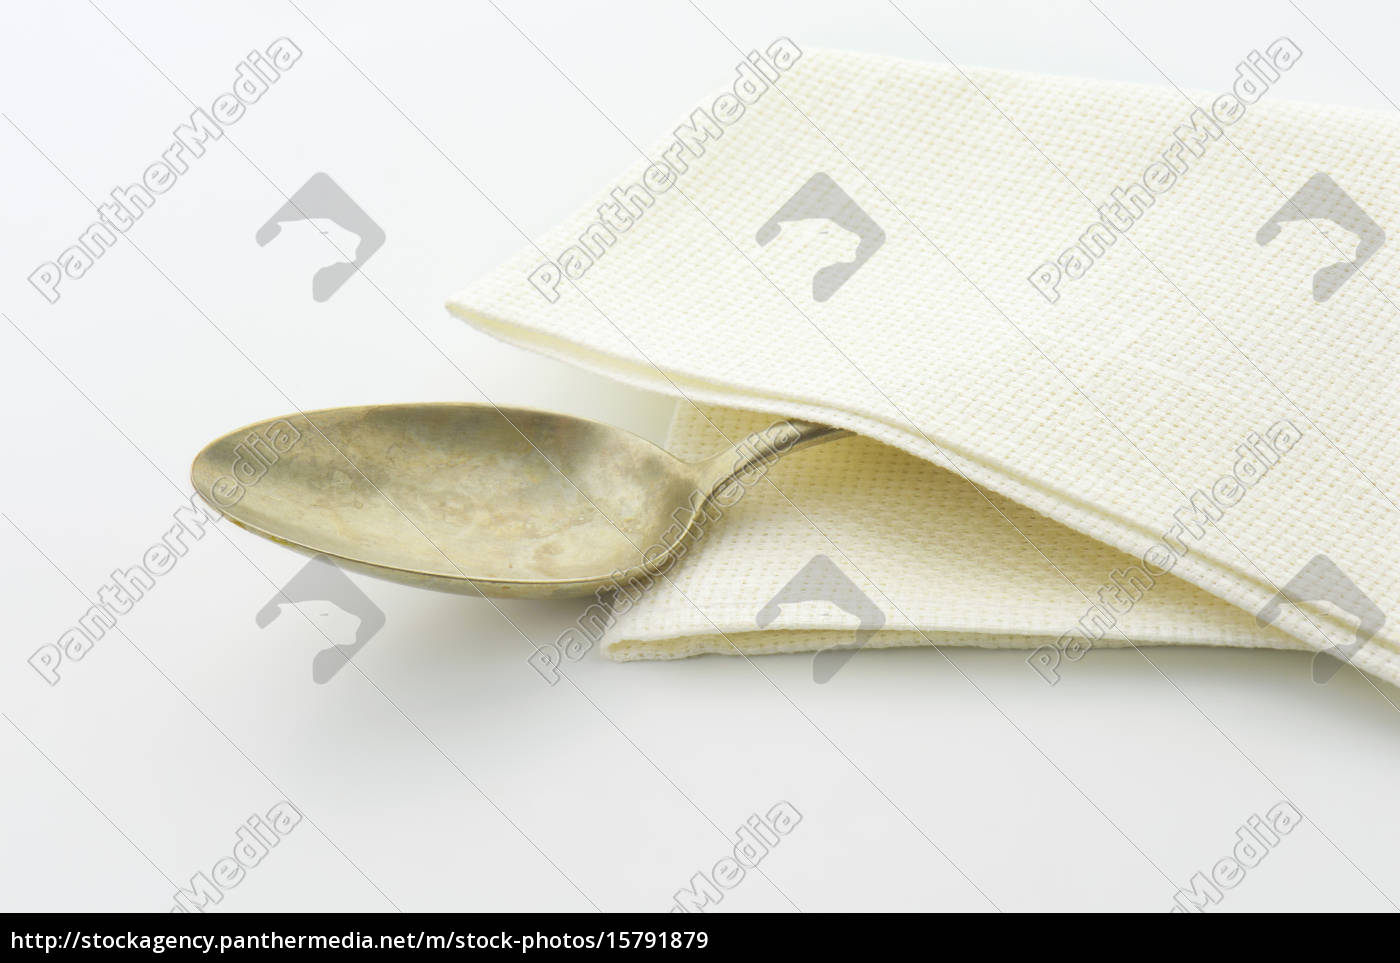 old, silver, spoon - 15791879